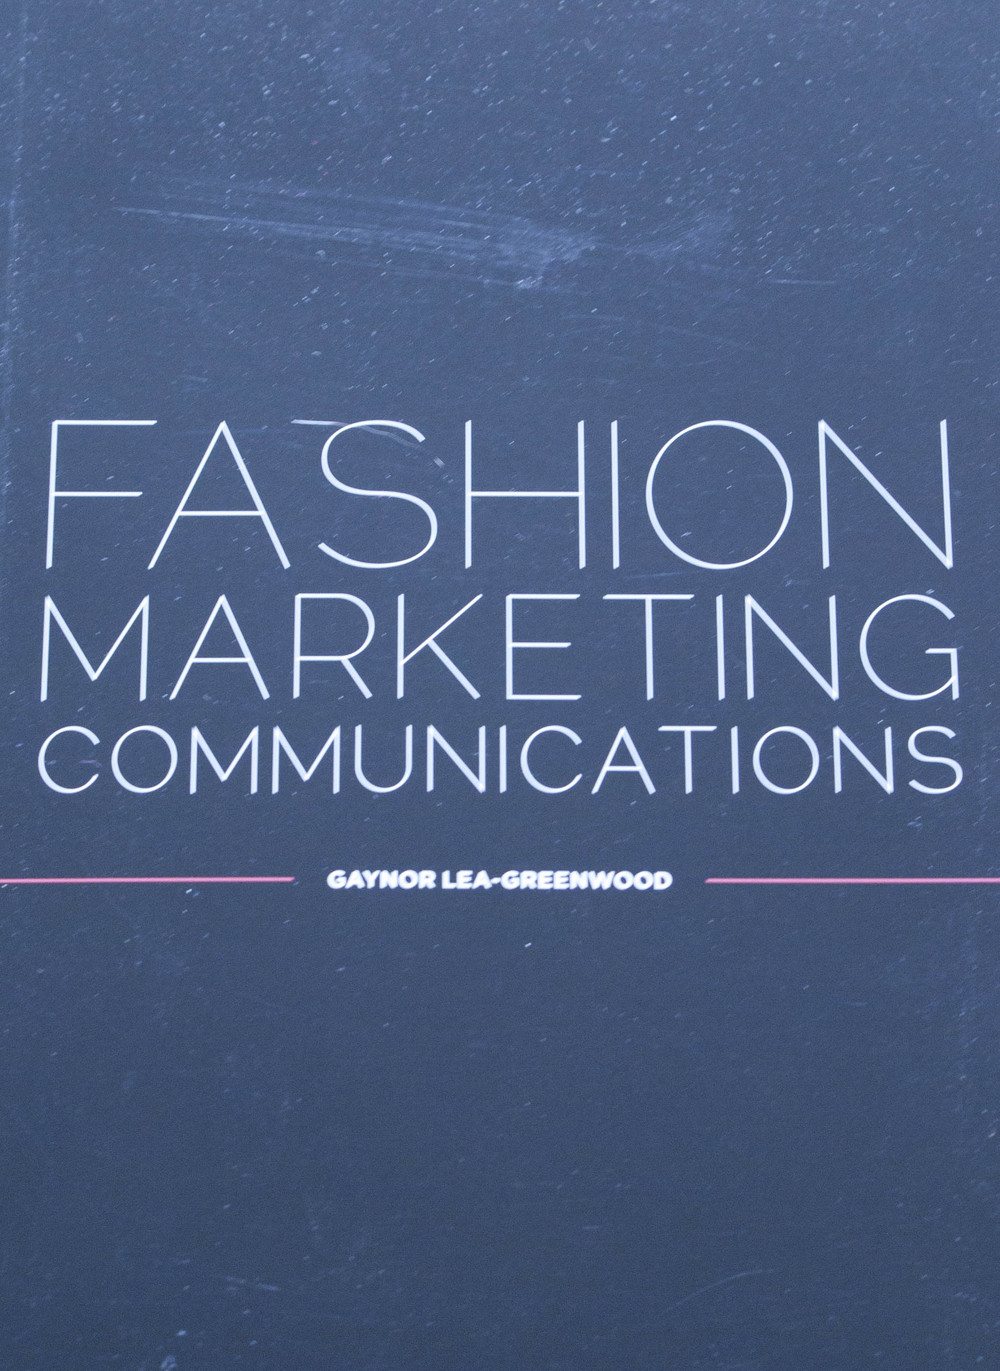 Fashion Marketing Communications.jpg